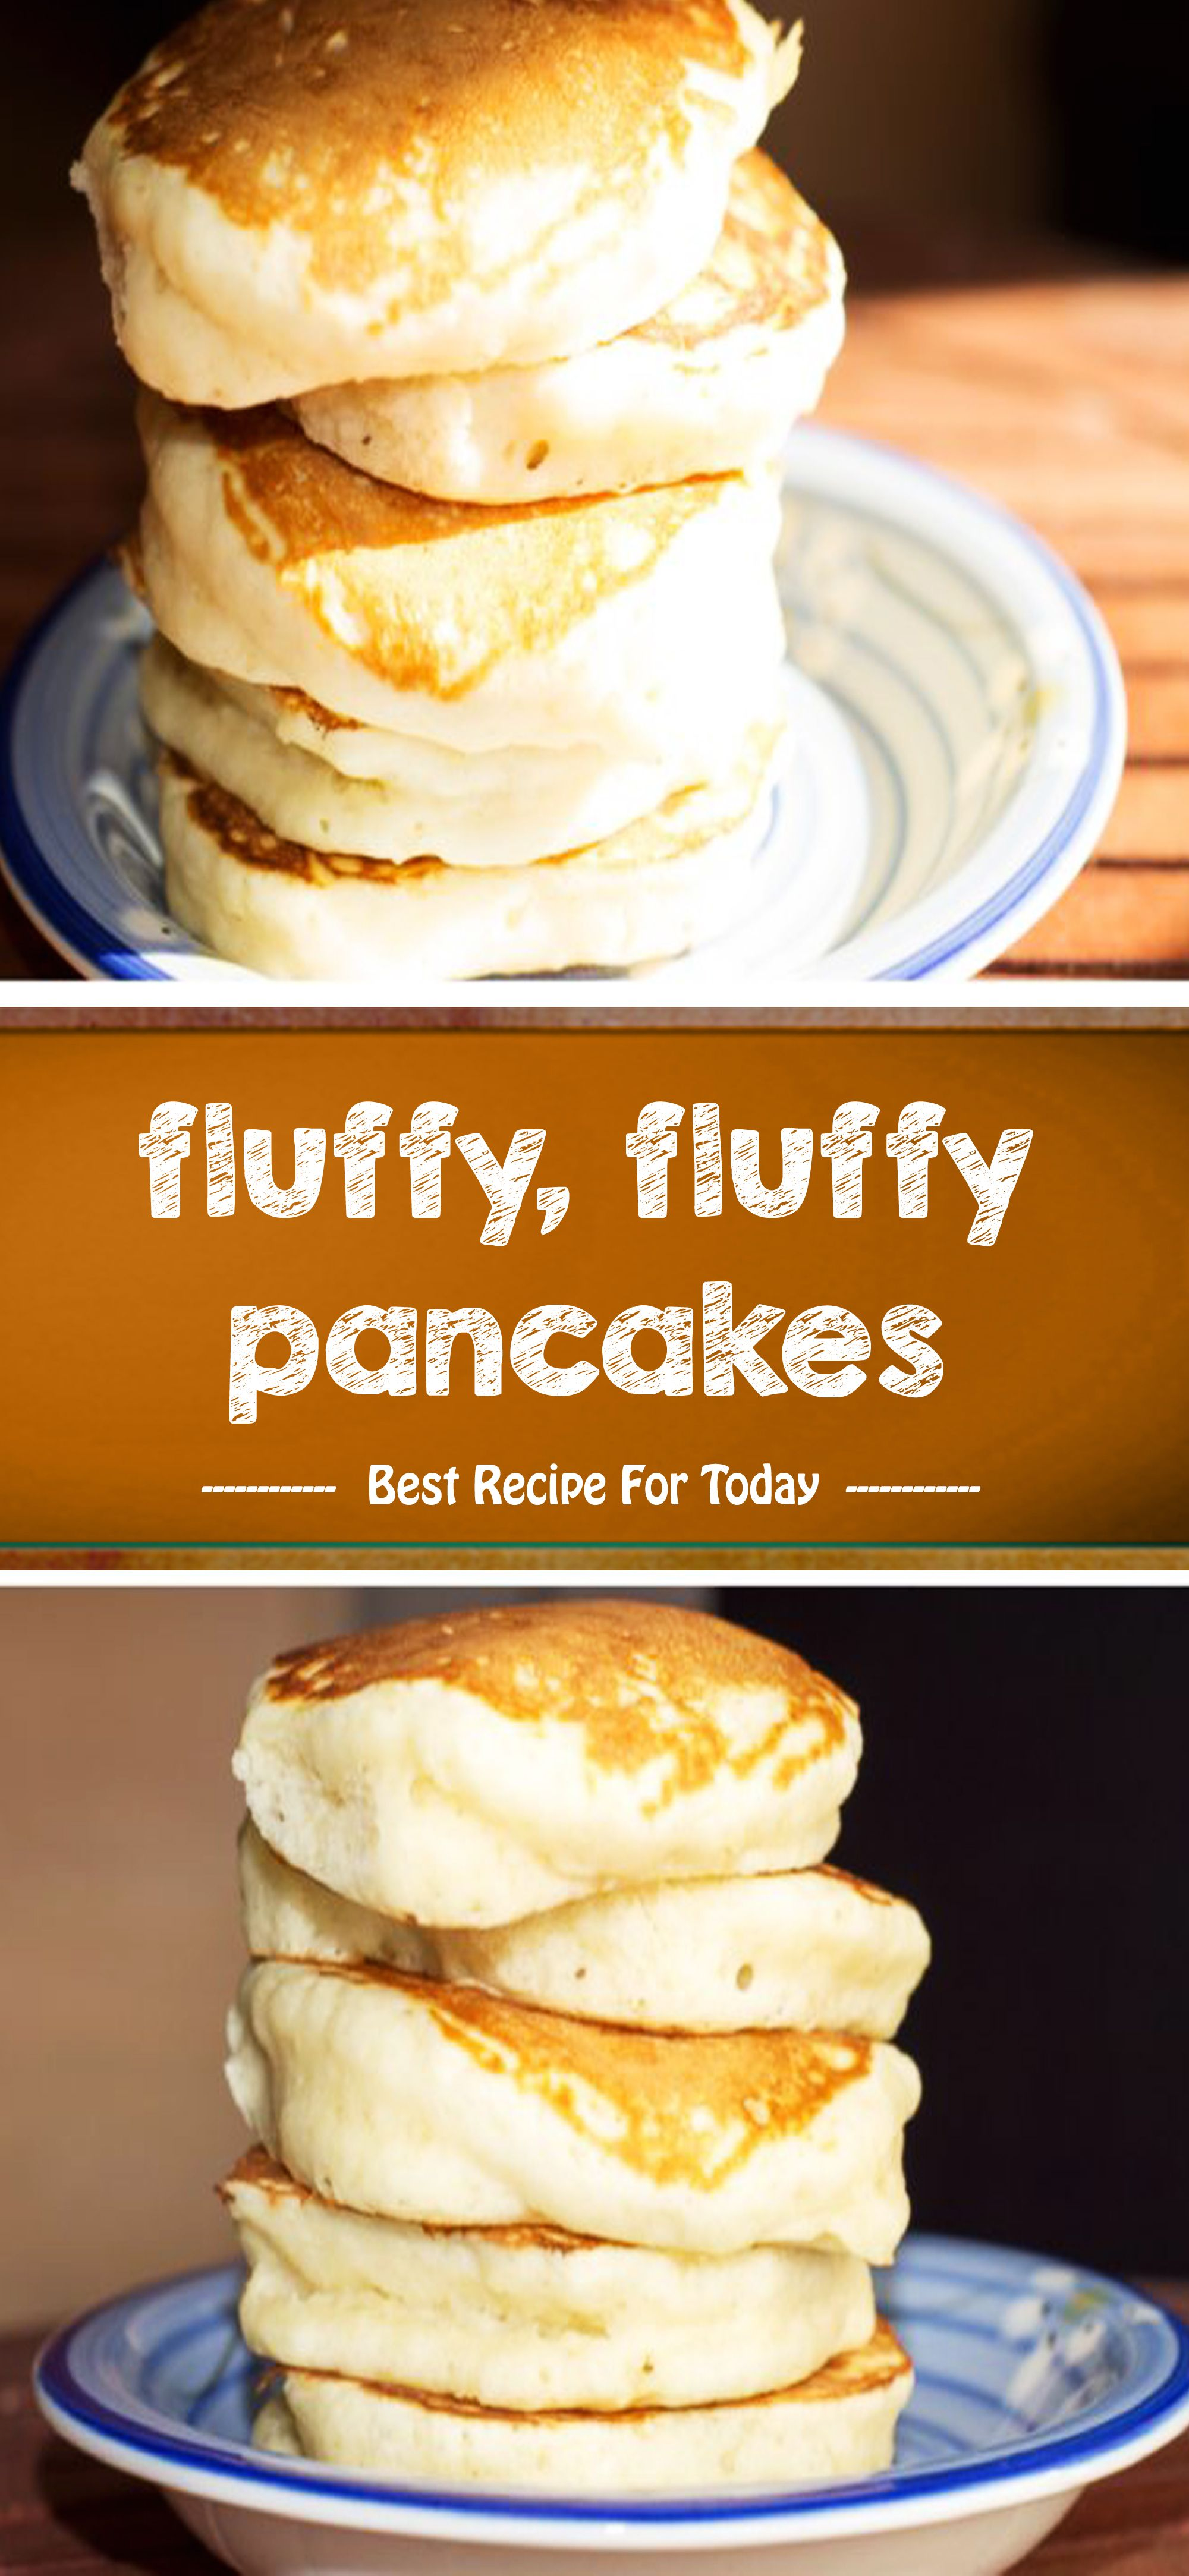 Fluffy Fluffy Pancakes With Images Fluffy Pancakes Baking Recipes Recipes